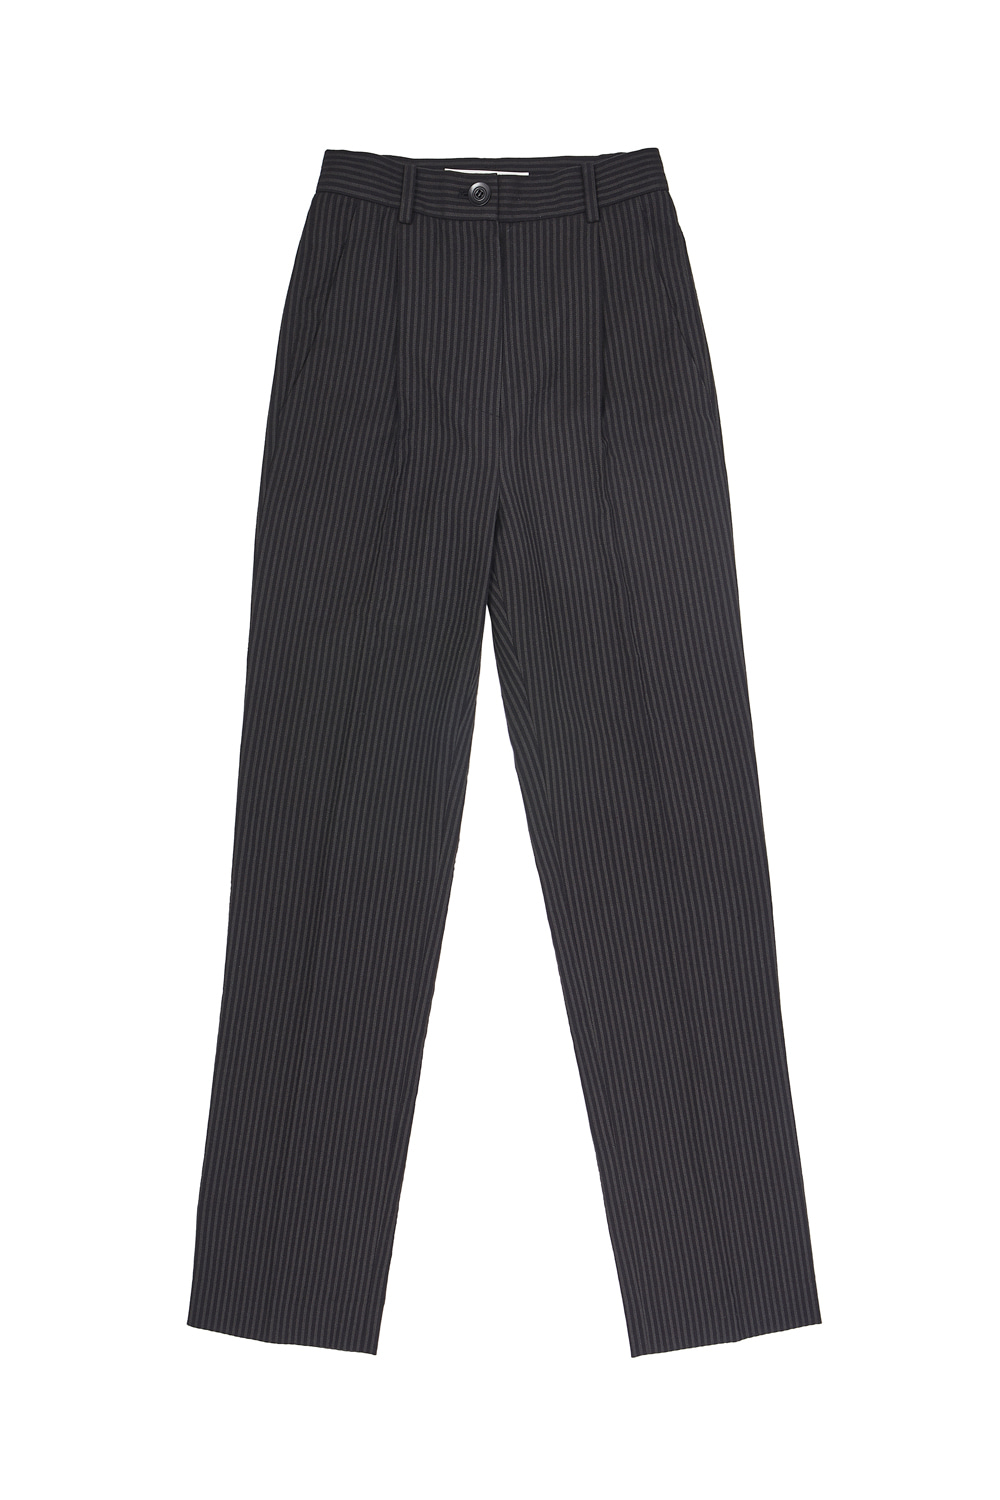 LONG SUIT PANTS_stripe black/gray